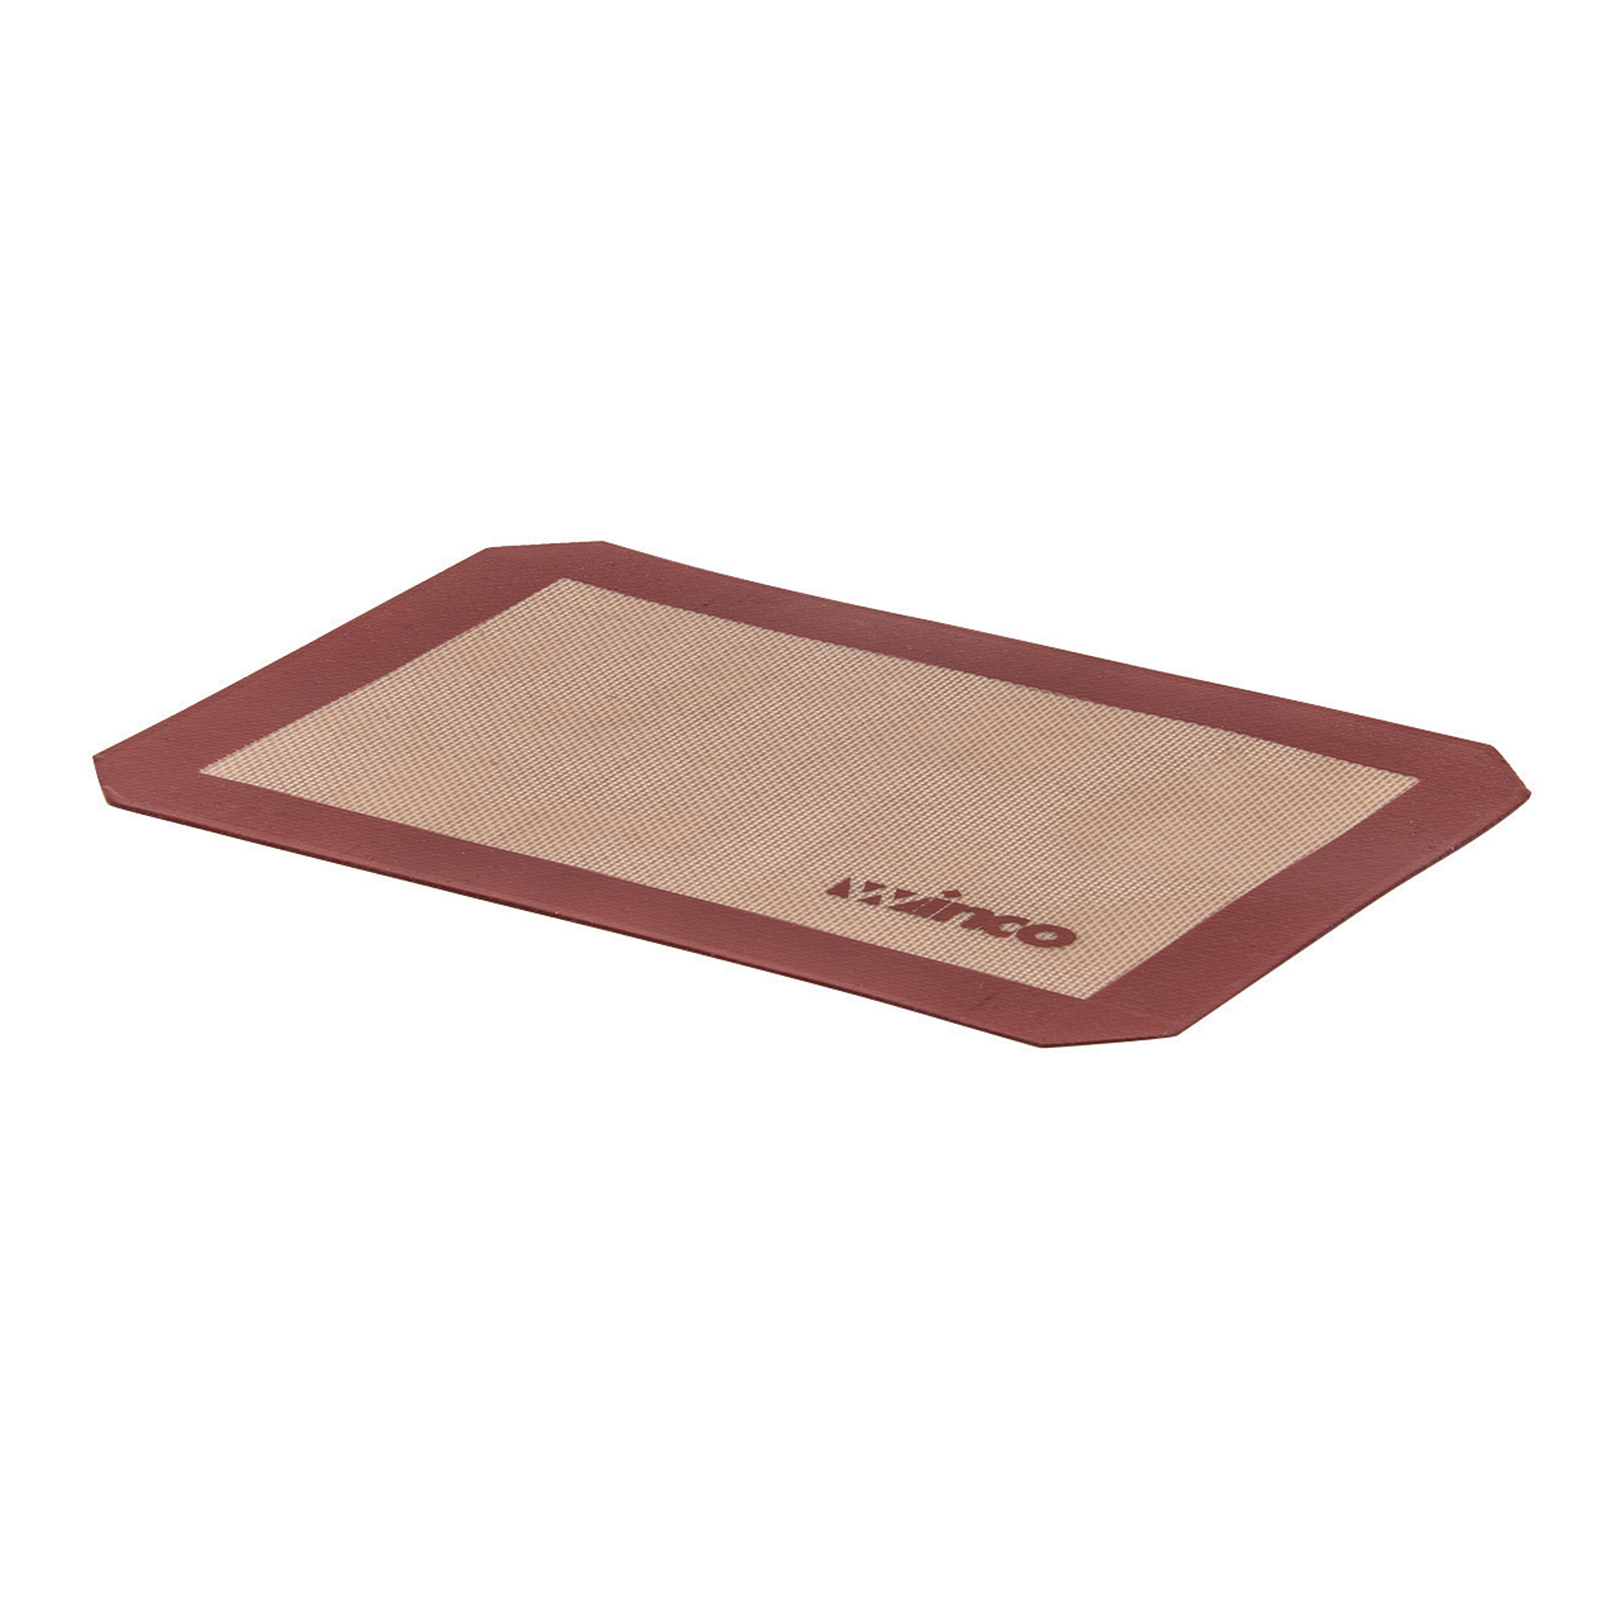 Winco SBS-24 baking mat